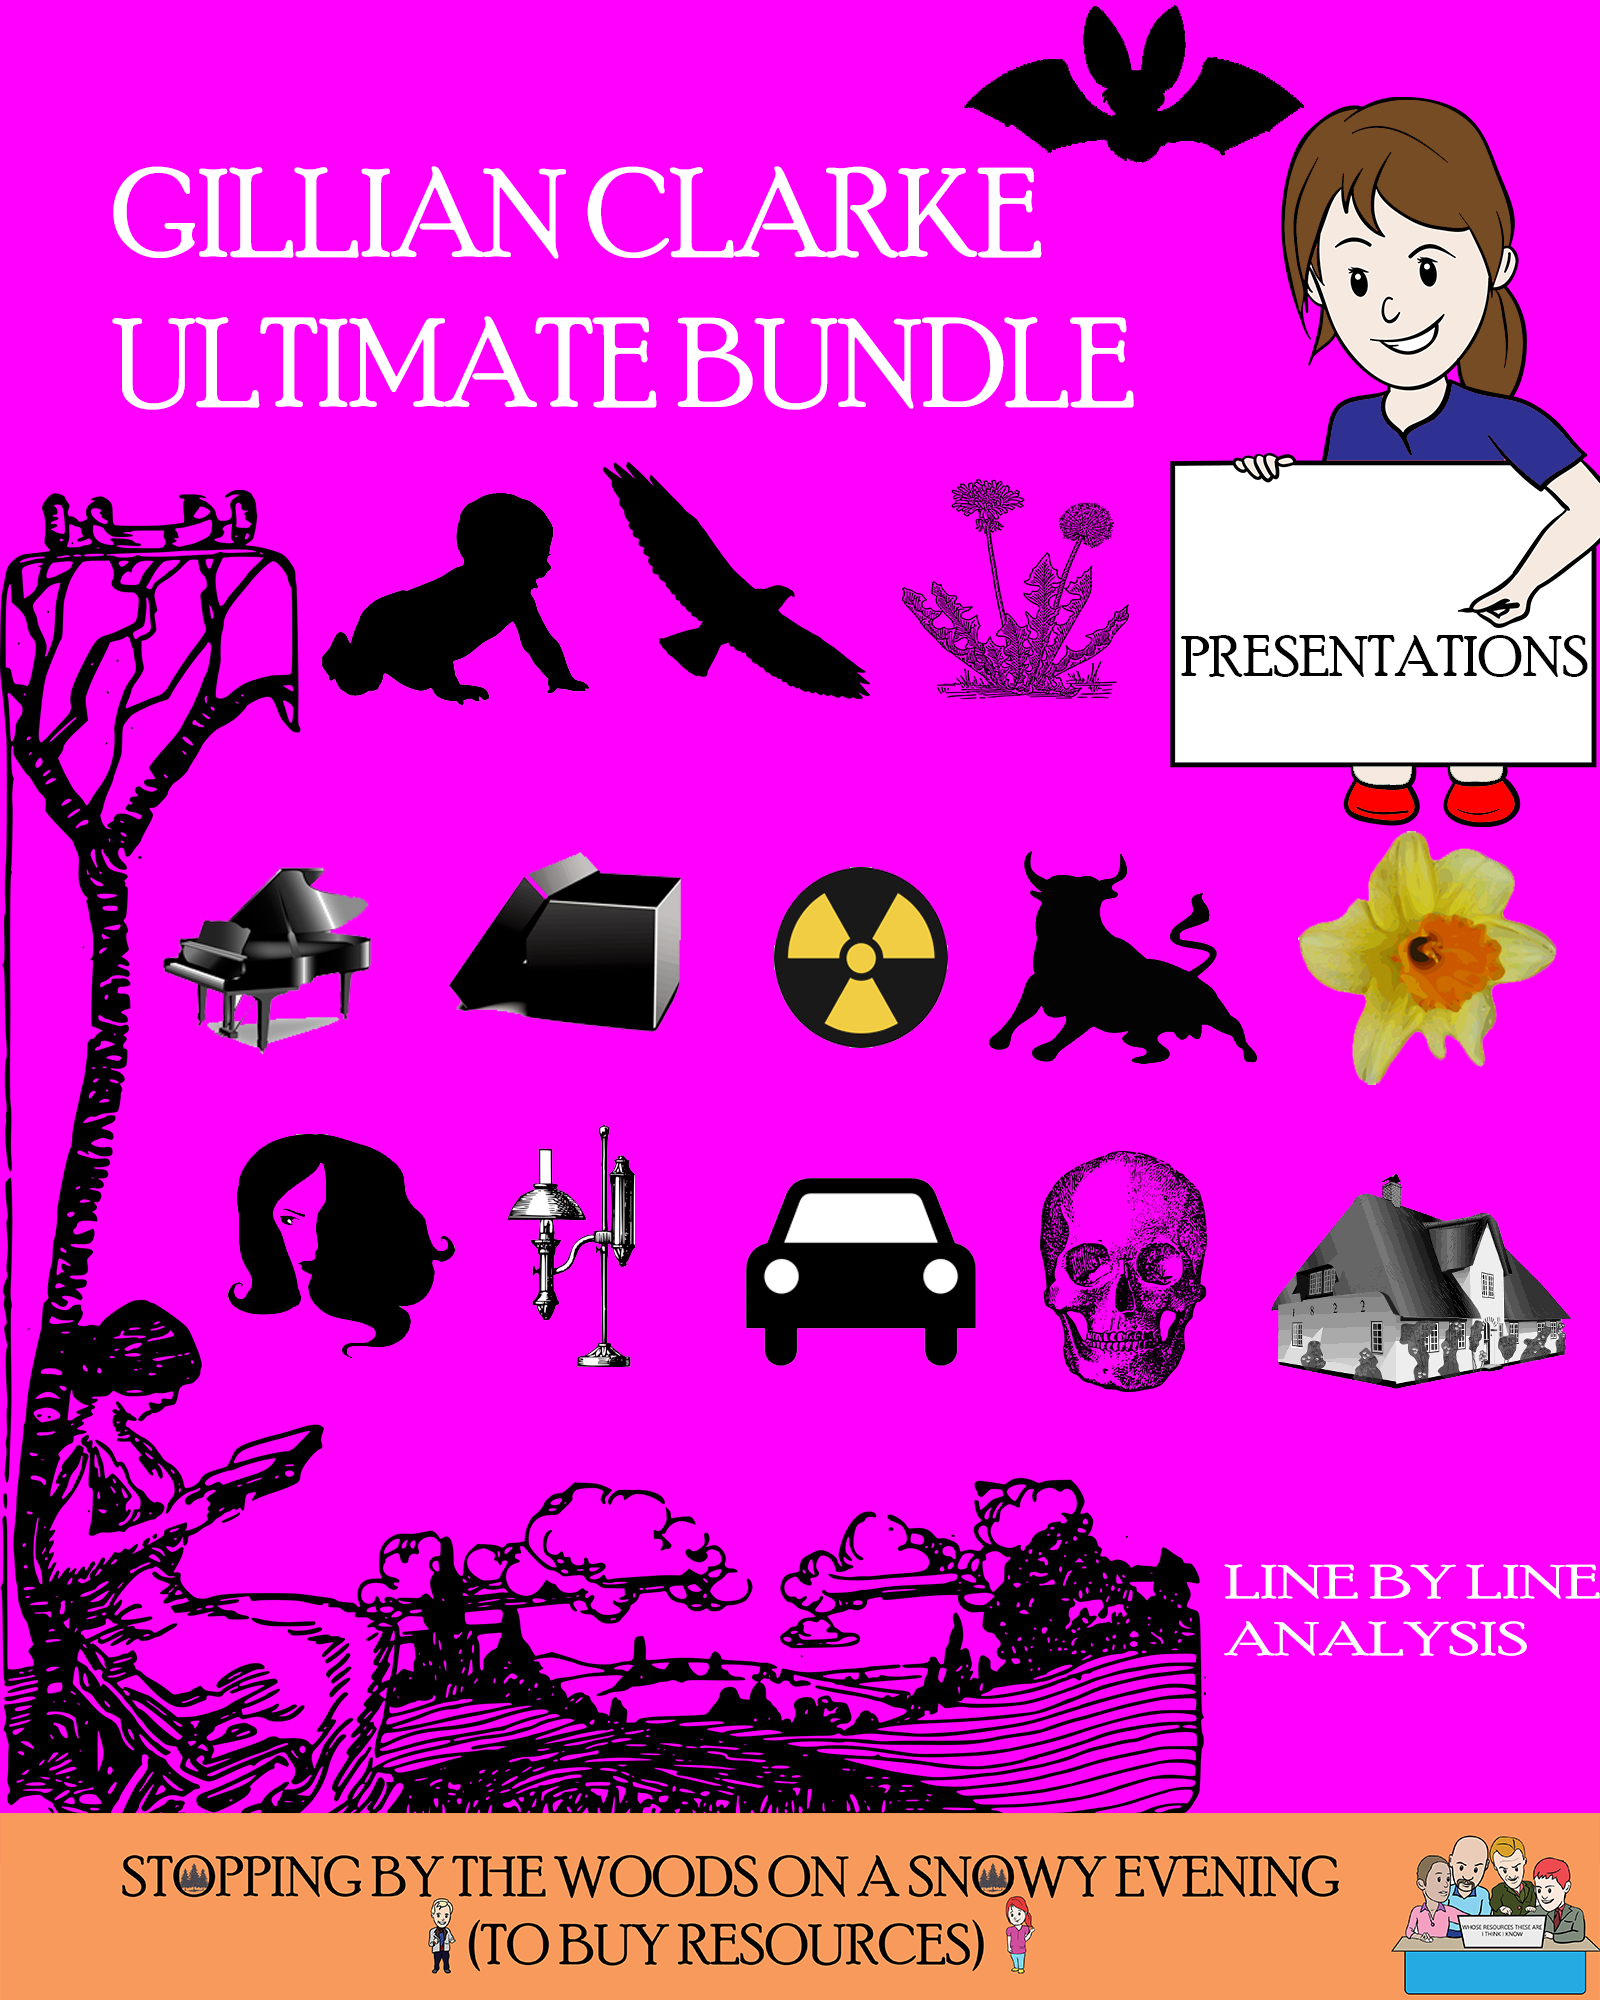 Ultimate Gillian Clarke Bundle